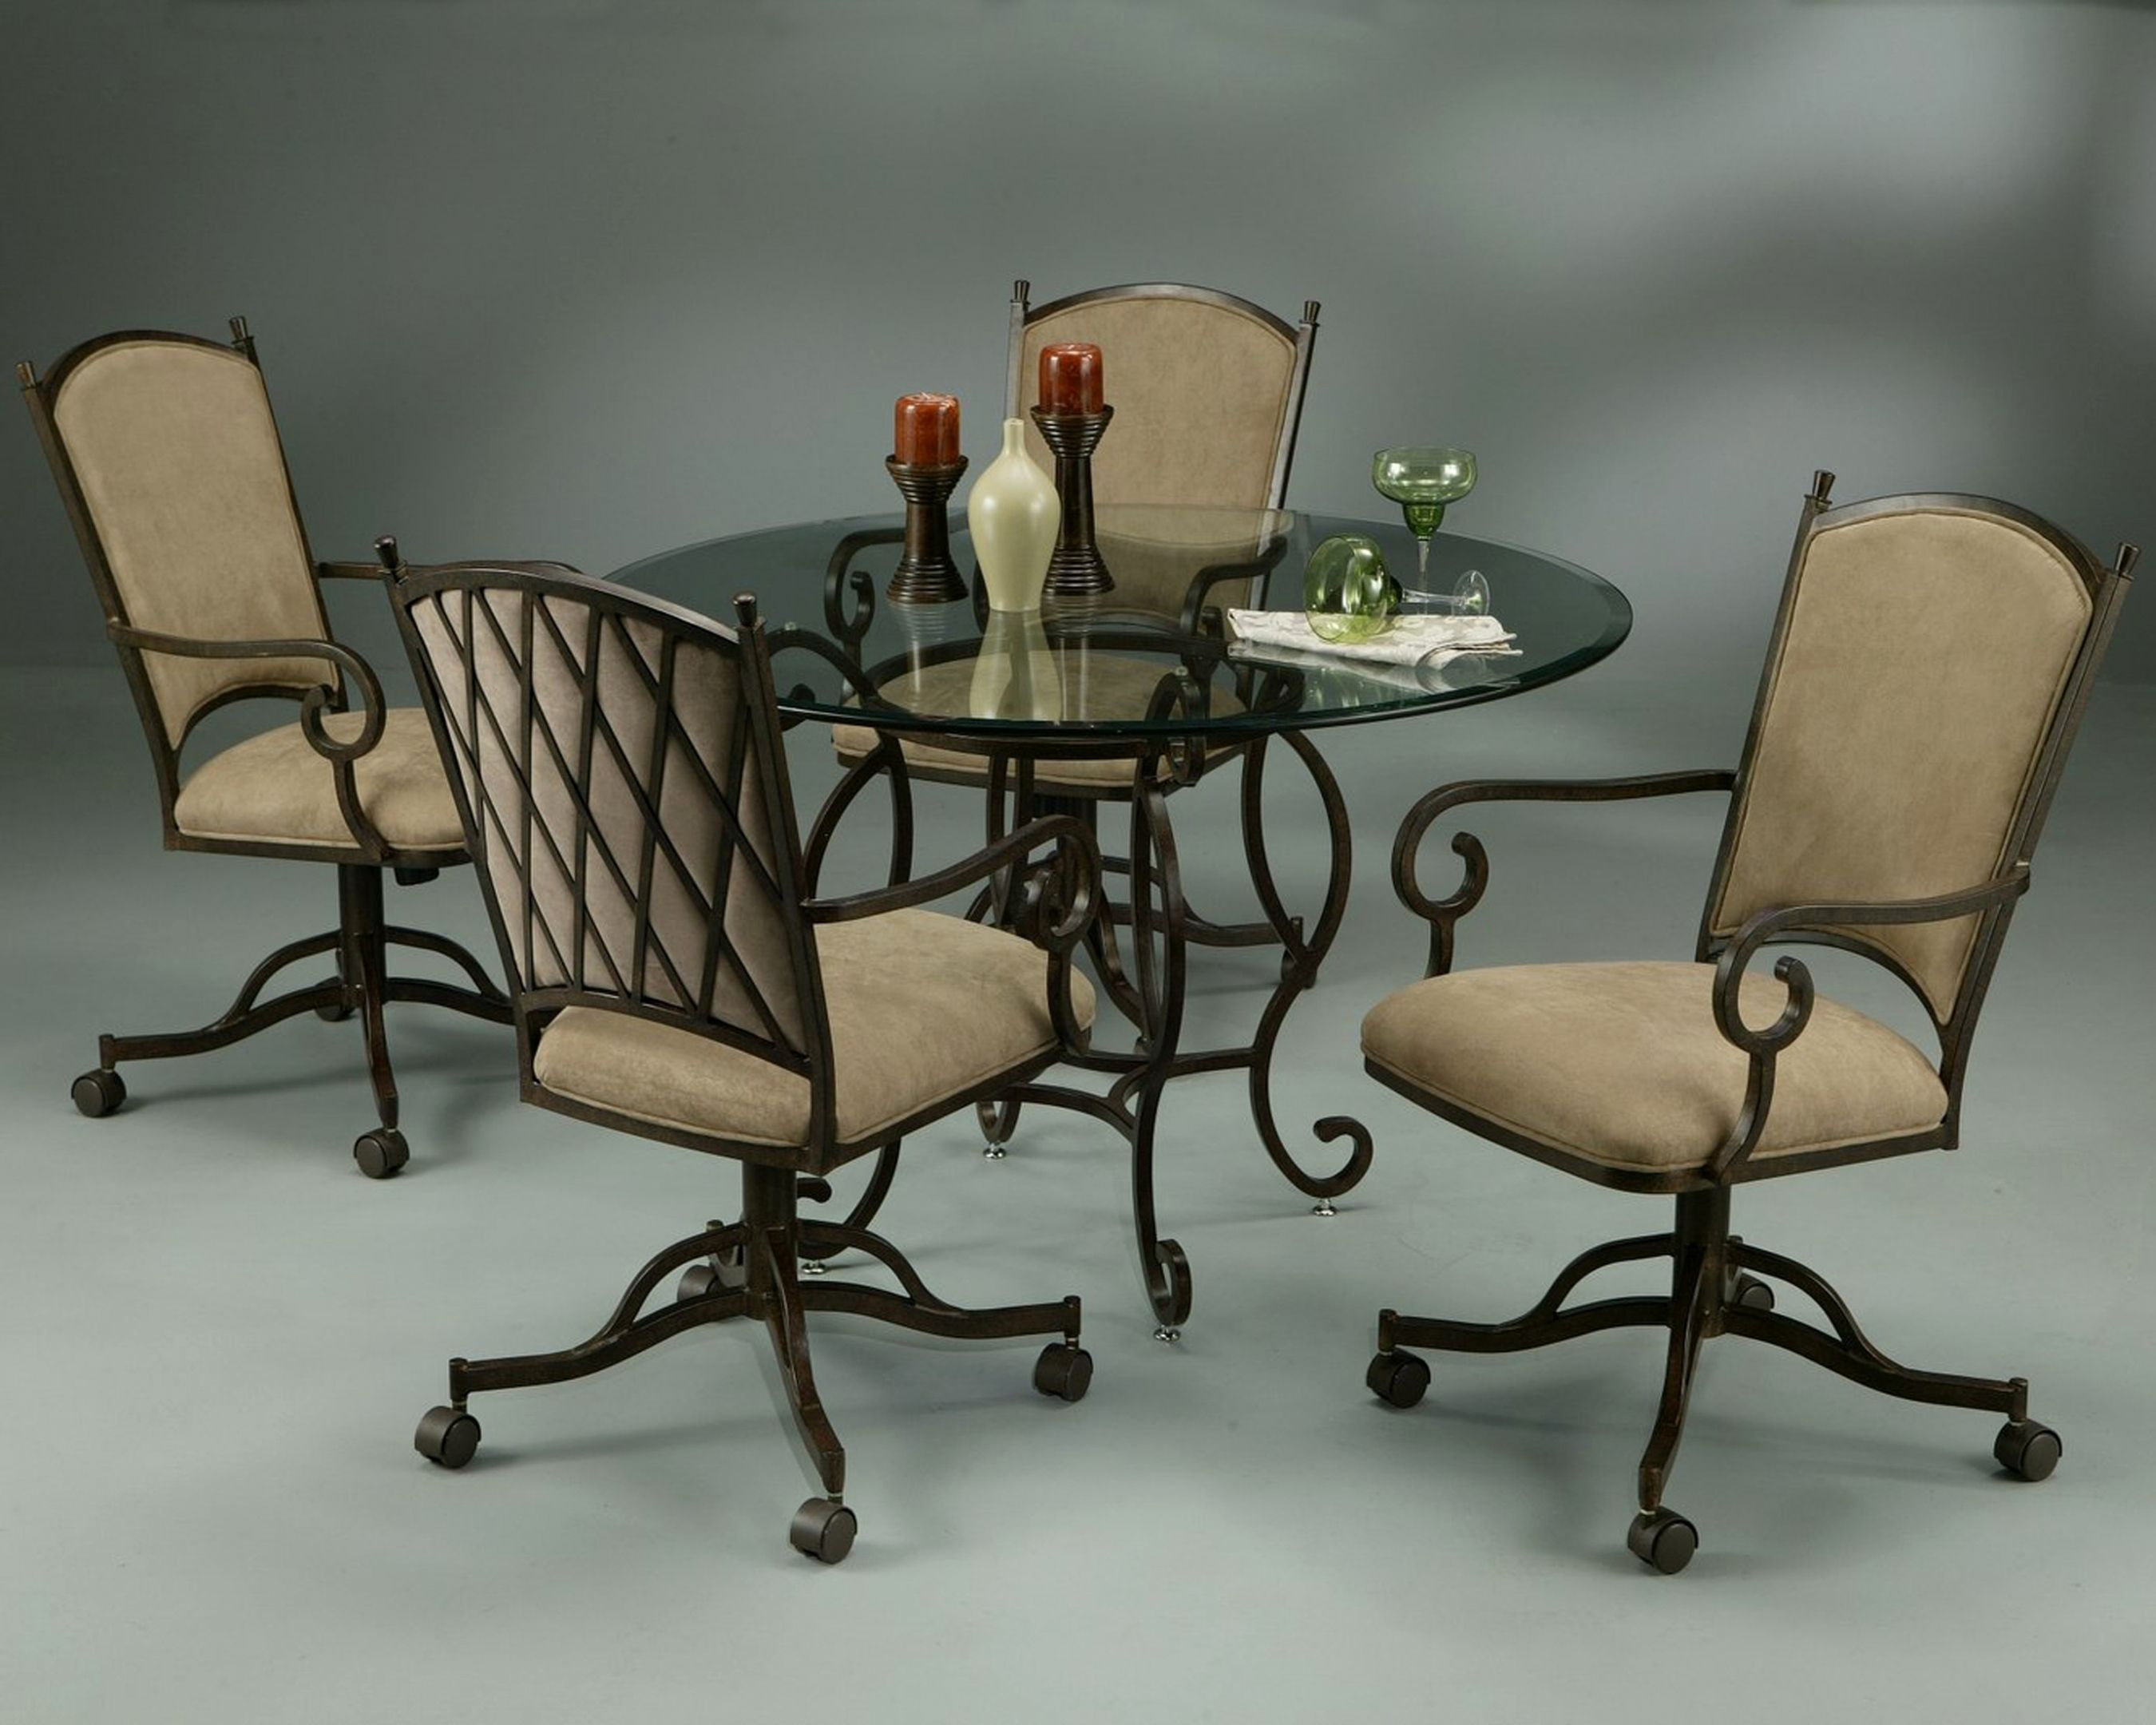 Dining Chairs With Casters Swivel Enter Home | Caster Chairs ...